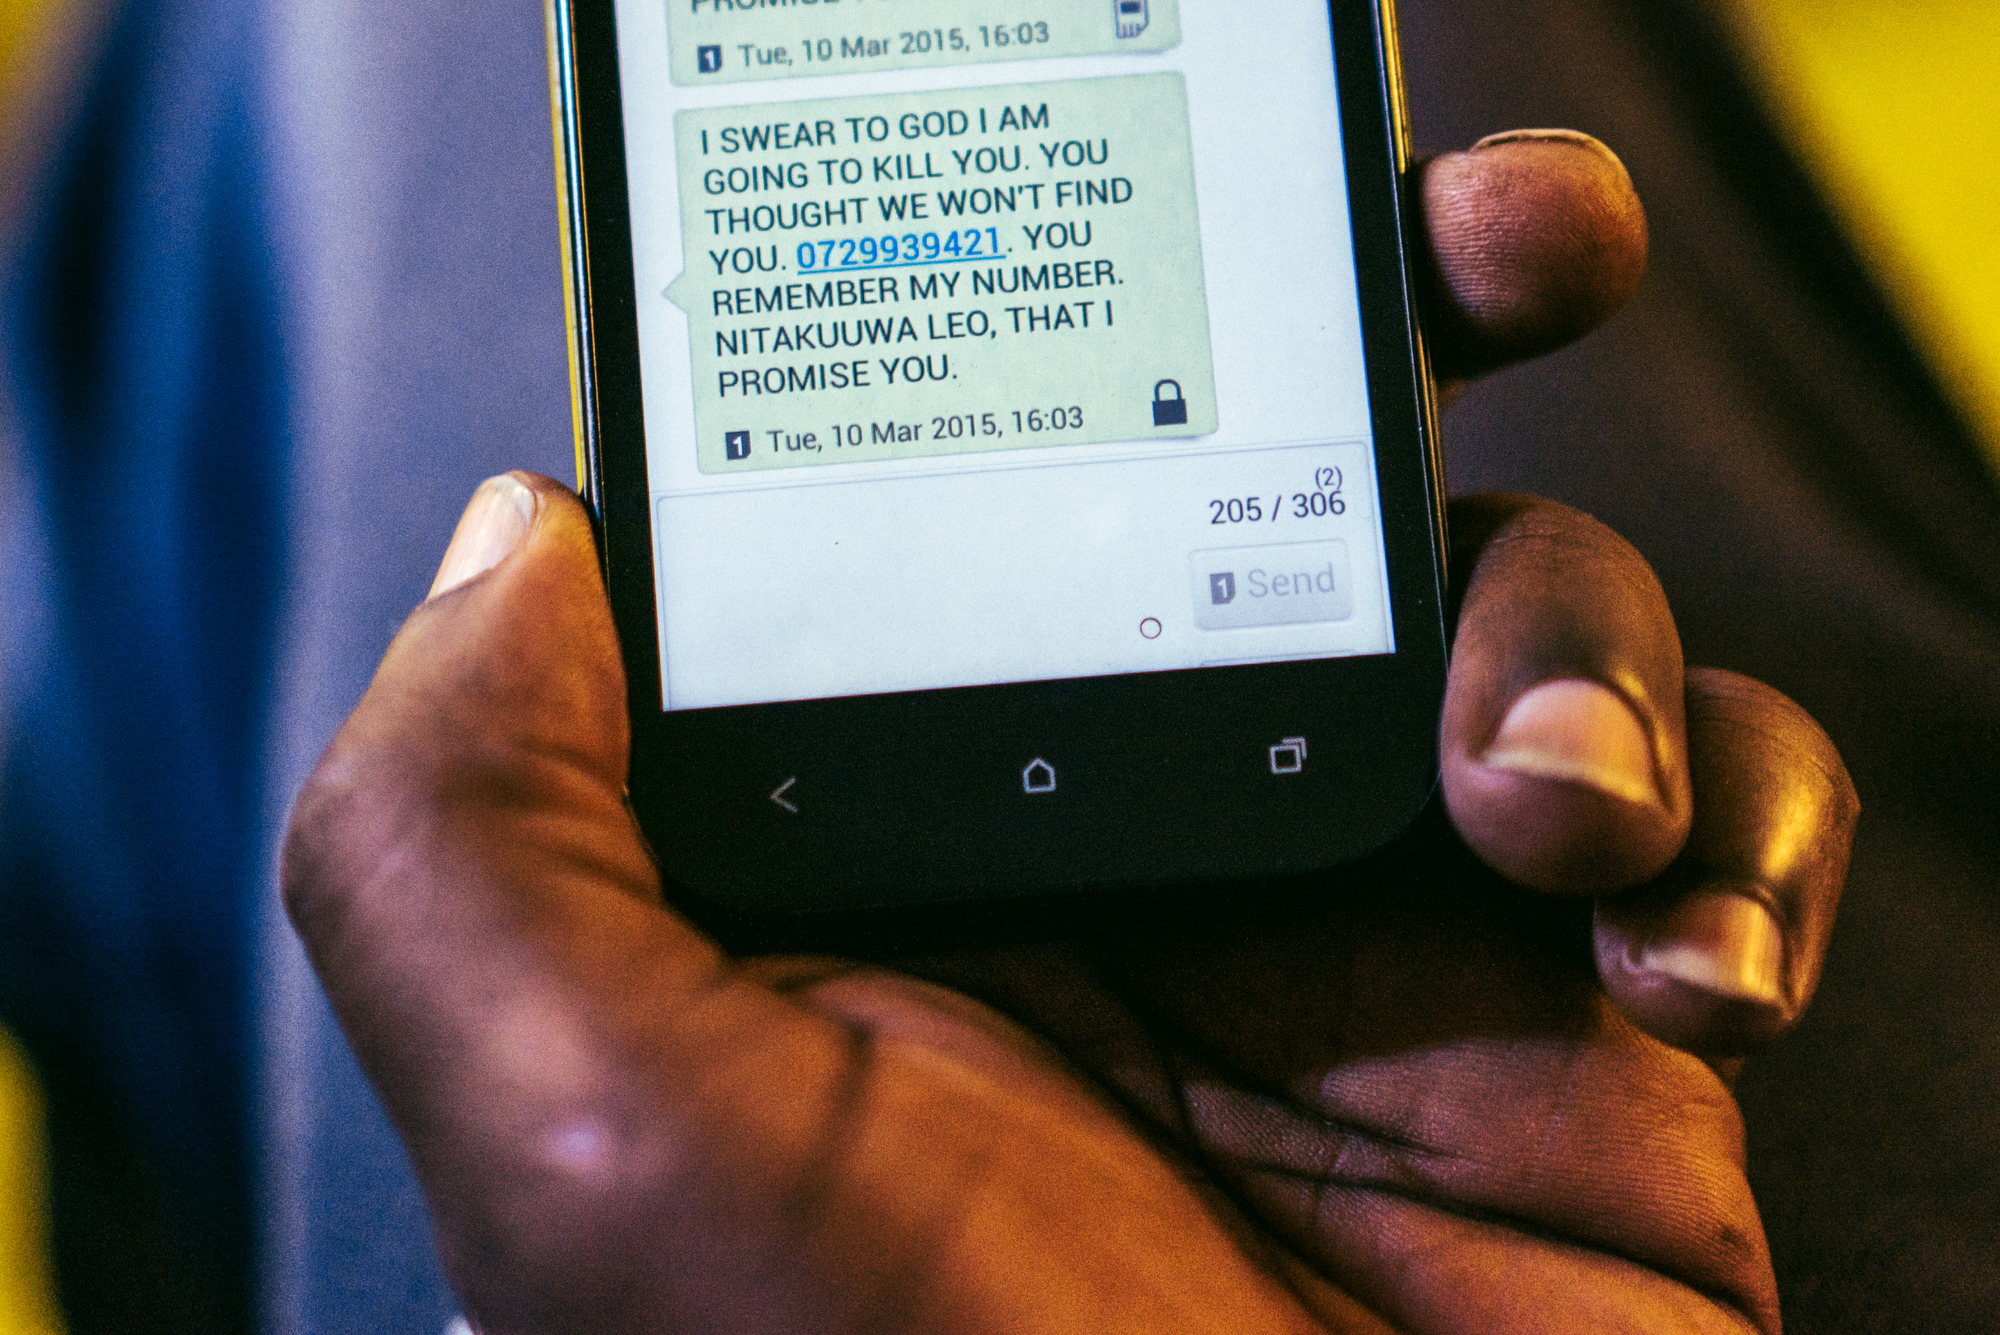 """A text message a gay refugee from Uganda received from an unknown number soon after he arrived in Kenya. The sender threatened to kill him that same day, and so he went into hiding. Because he was unsure who sent the message, he lived in constant fear. """"It's a life of hiding. You have to hide,"""" he said. He has since been resettled in the United States, but still has family living in Uganda. Until they are able to join him in the United States, he will not feel truly at ease."""